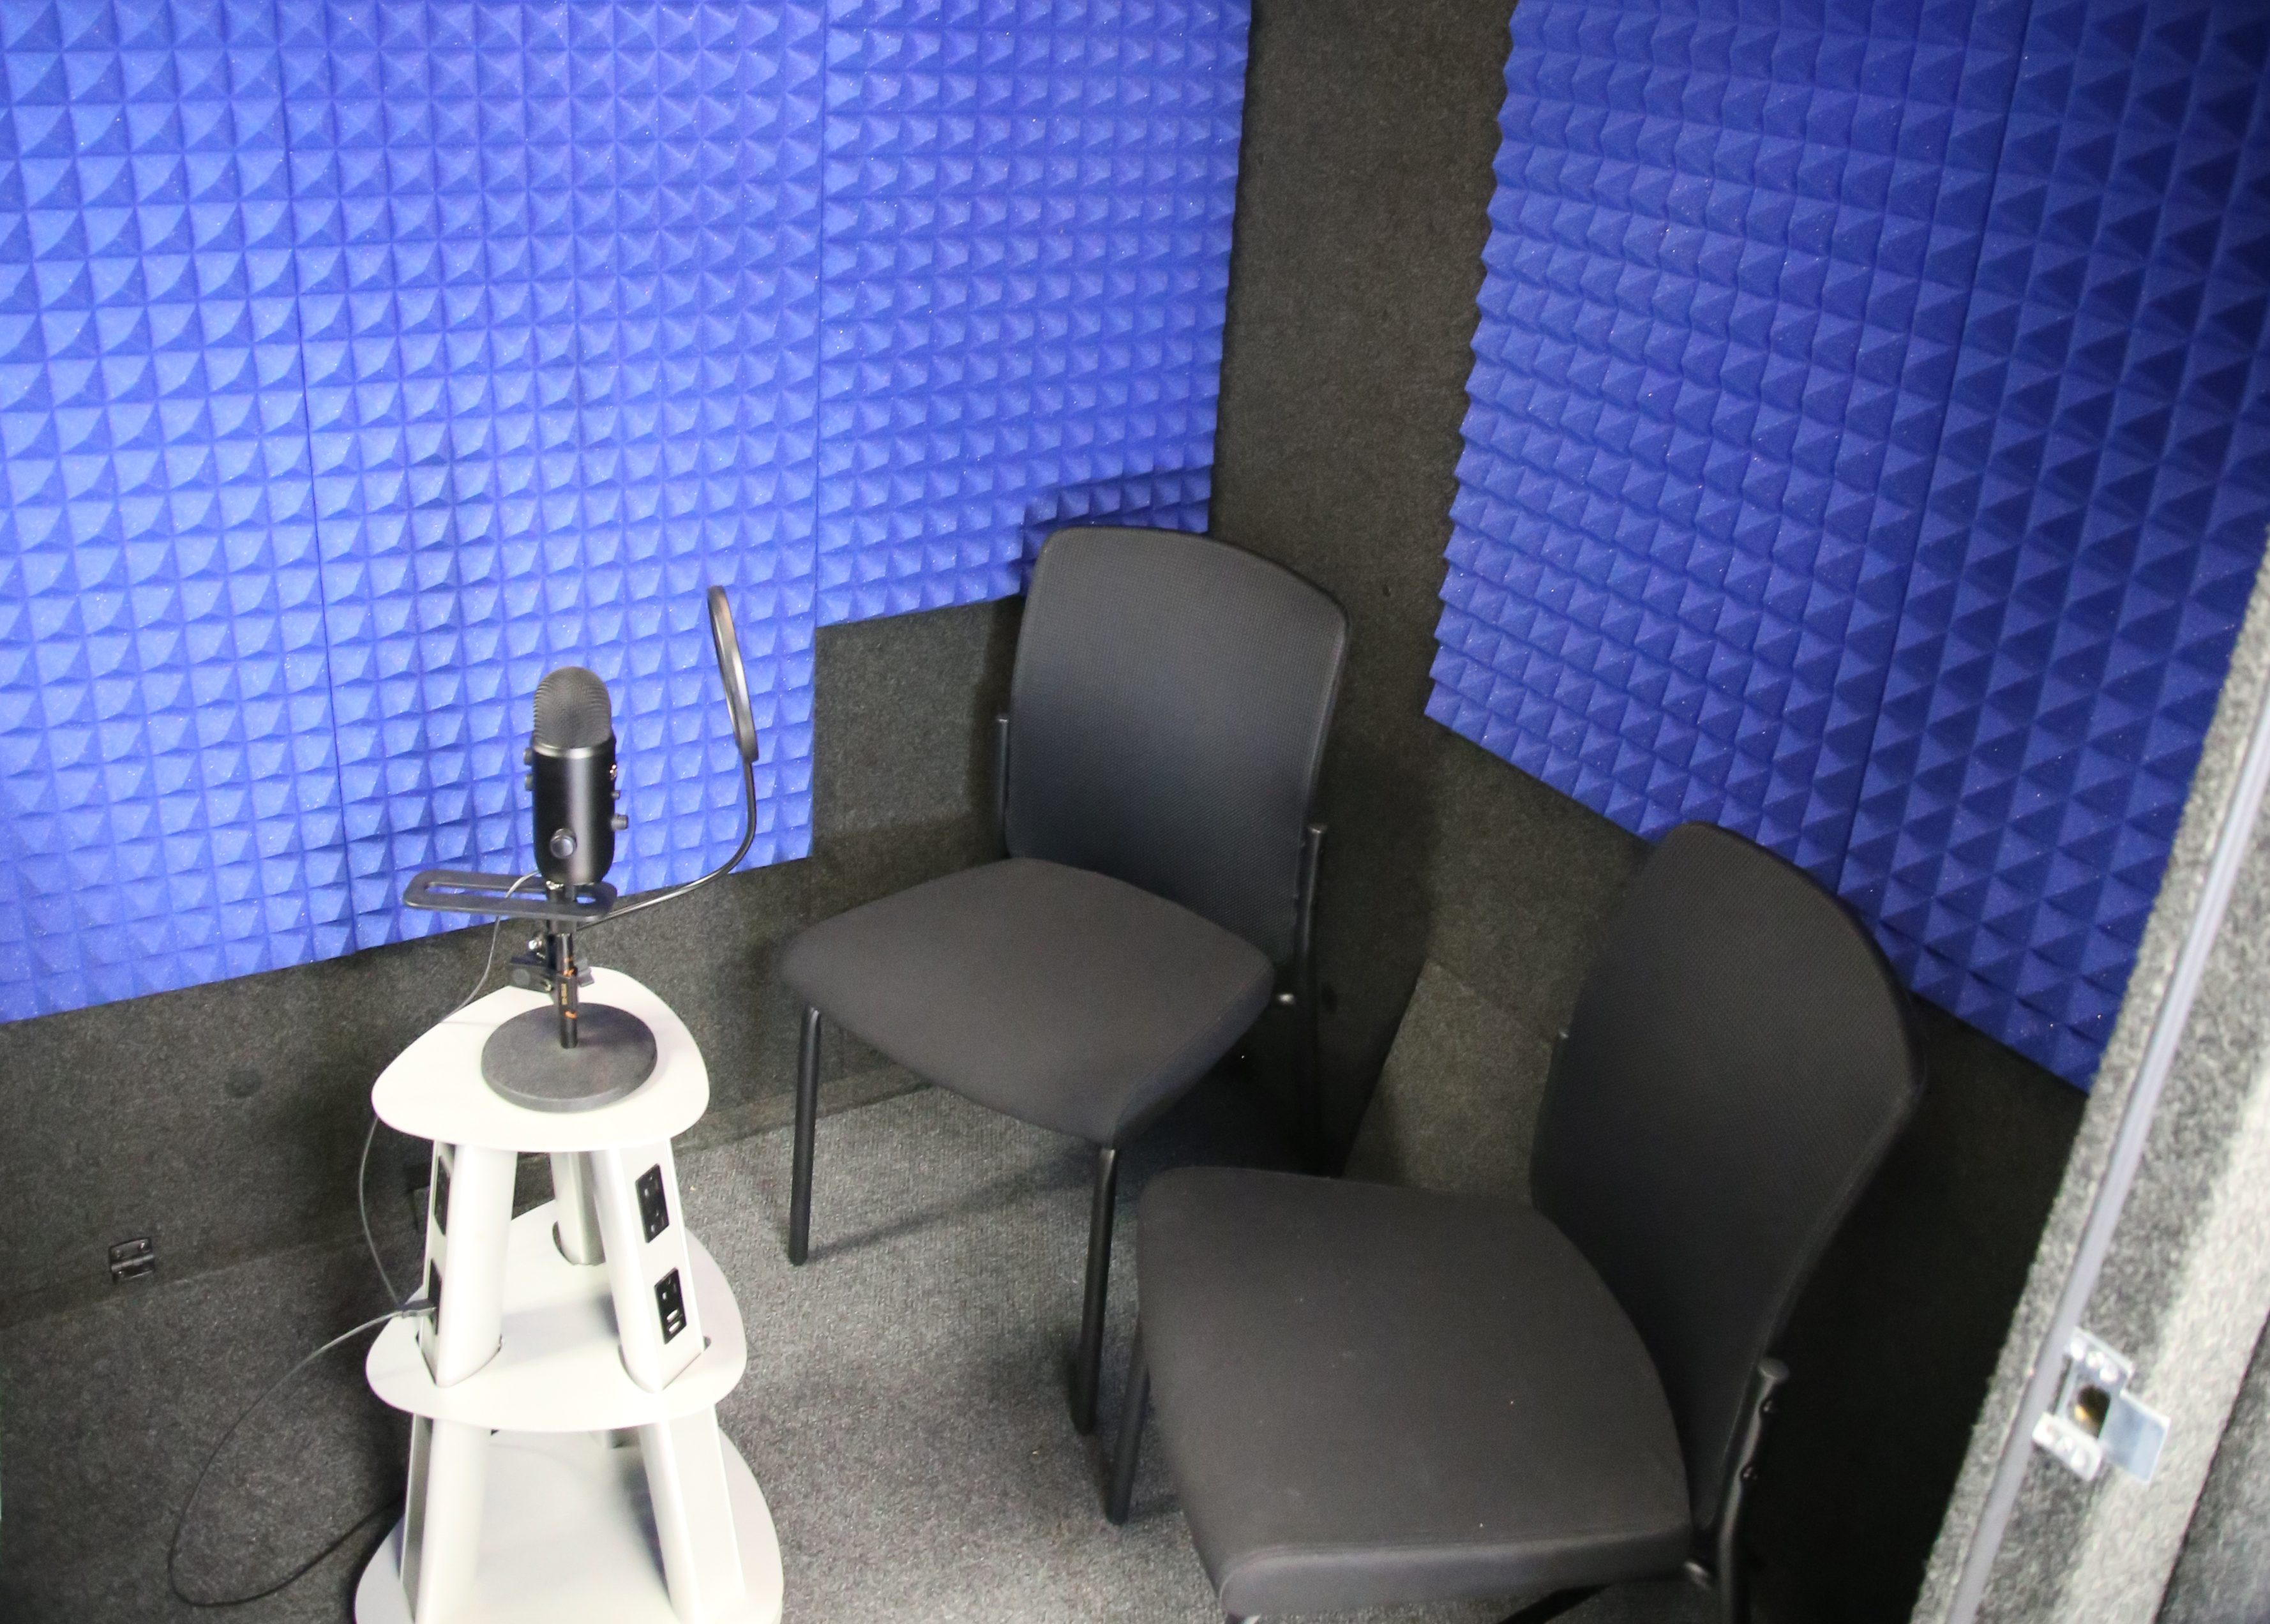 Two chairs sit in front of a microphone inside a soundbooth padded with foam.